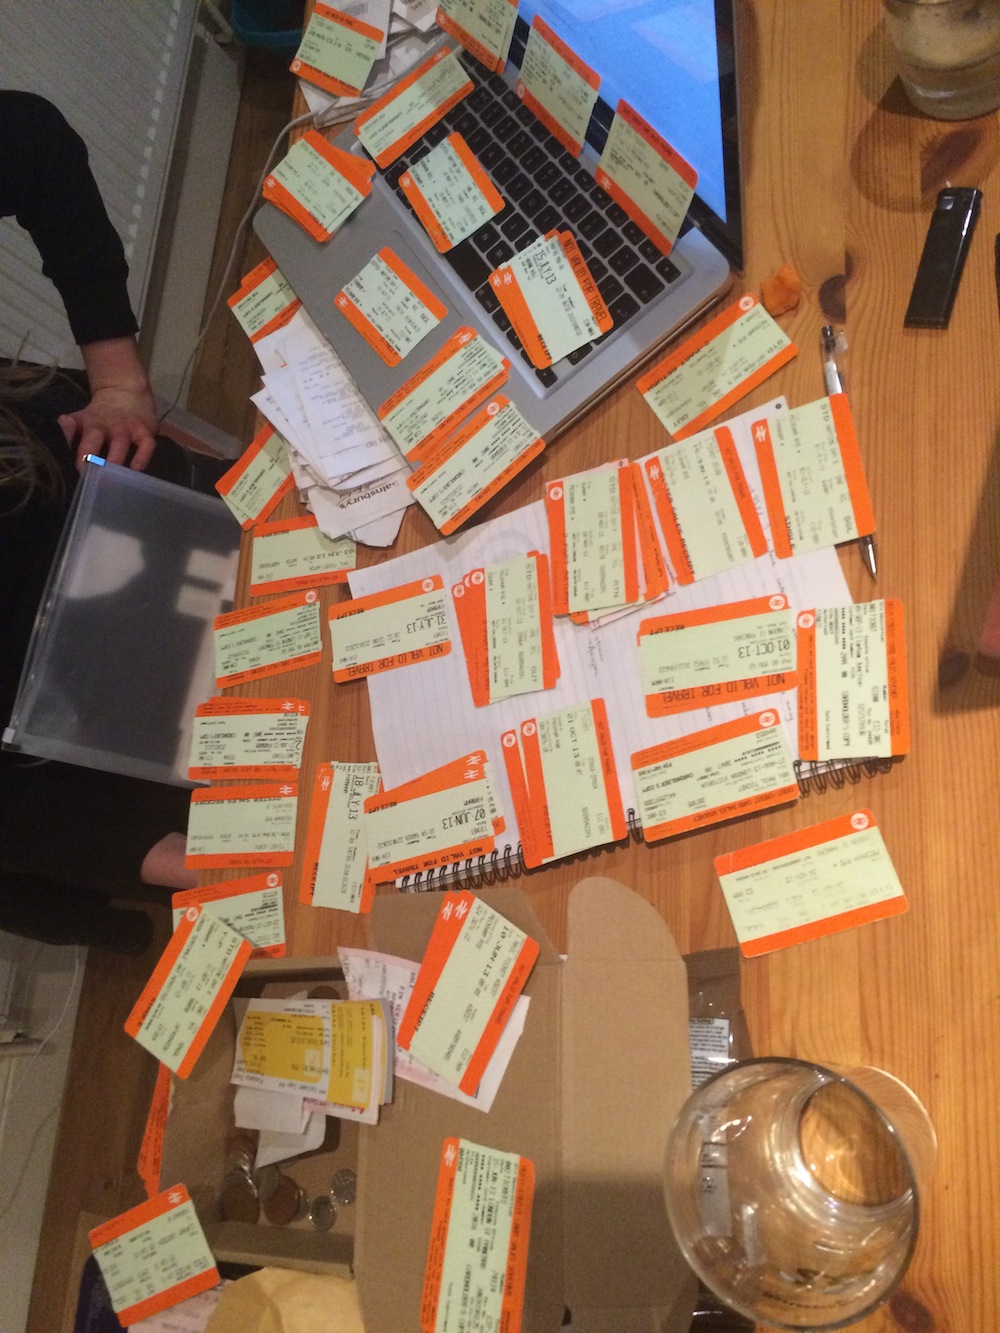 The 29 stages of filing your tax return at the last minute